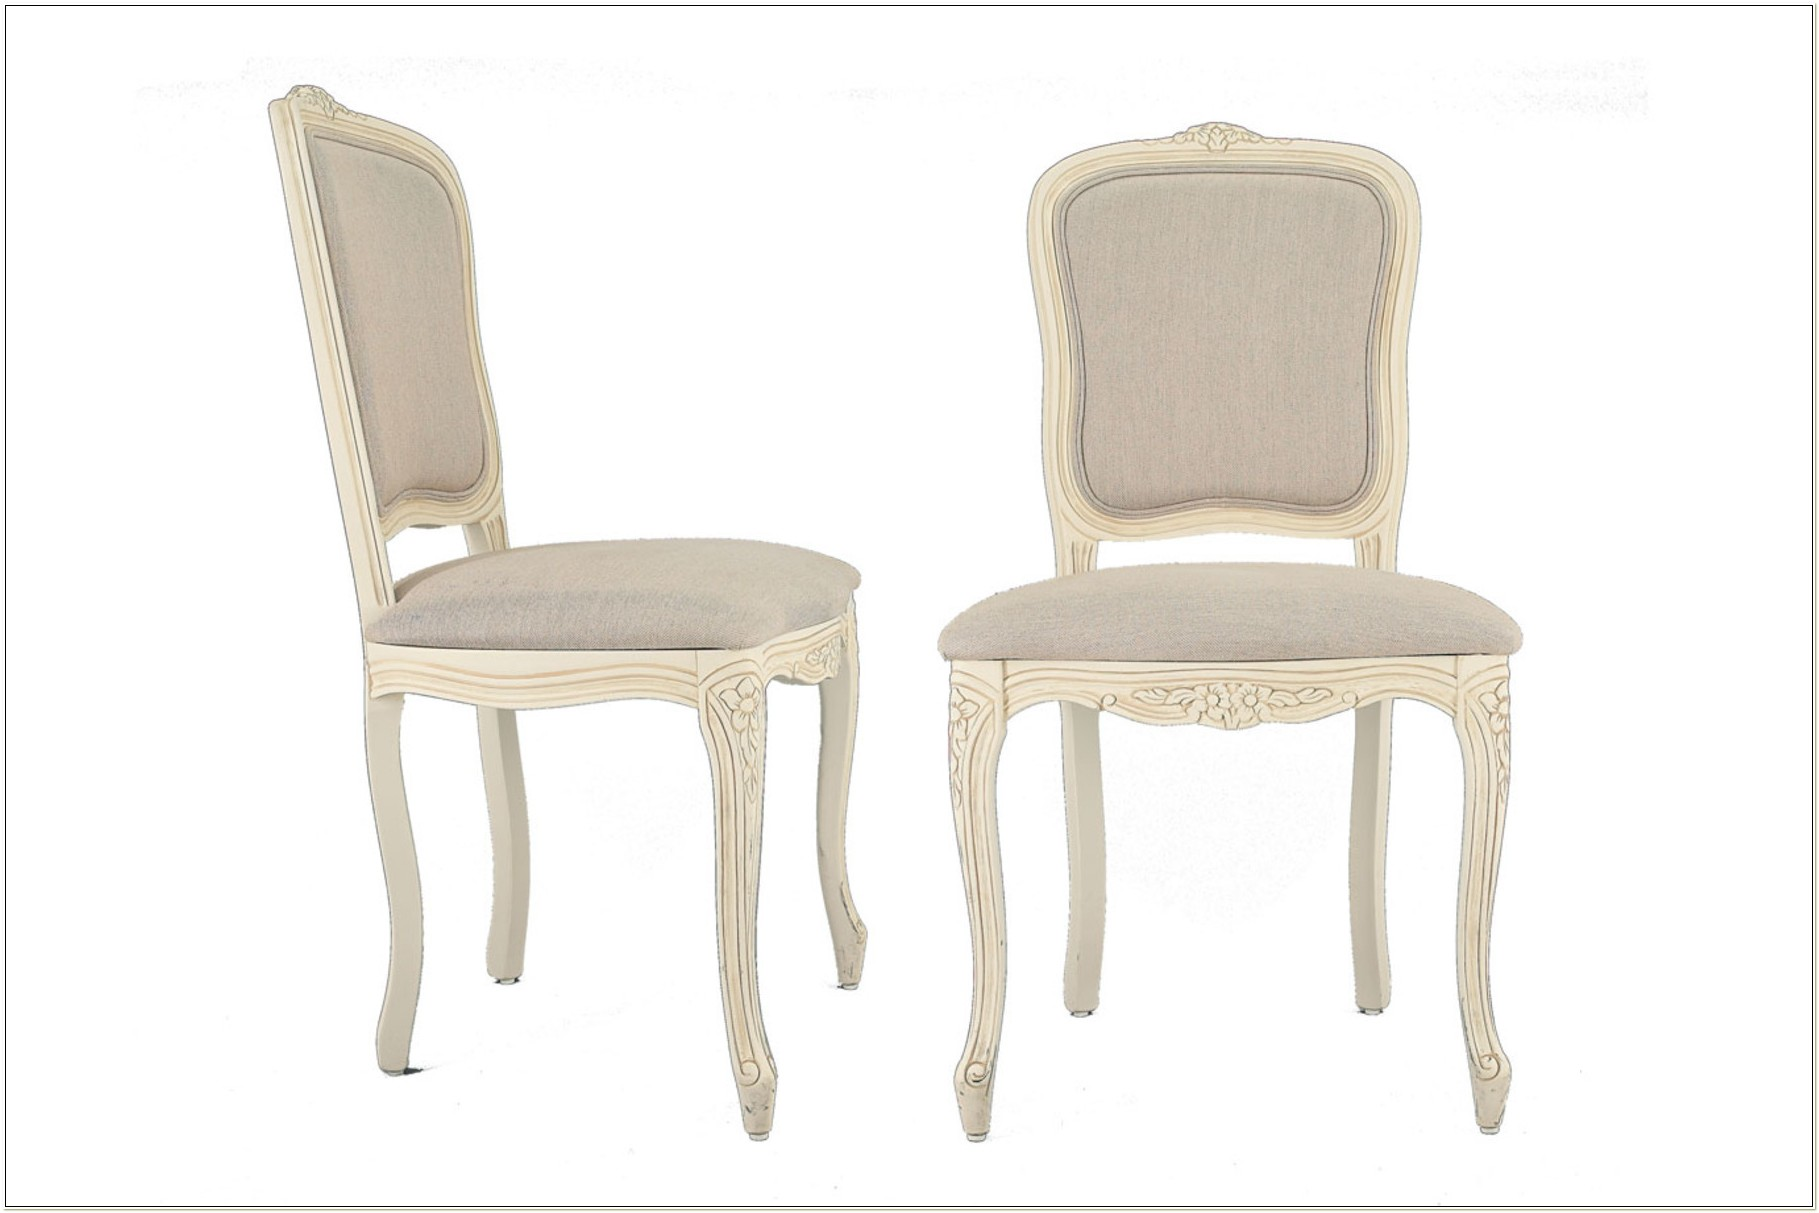 Laura Ashley Provencale Dining Chairs